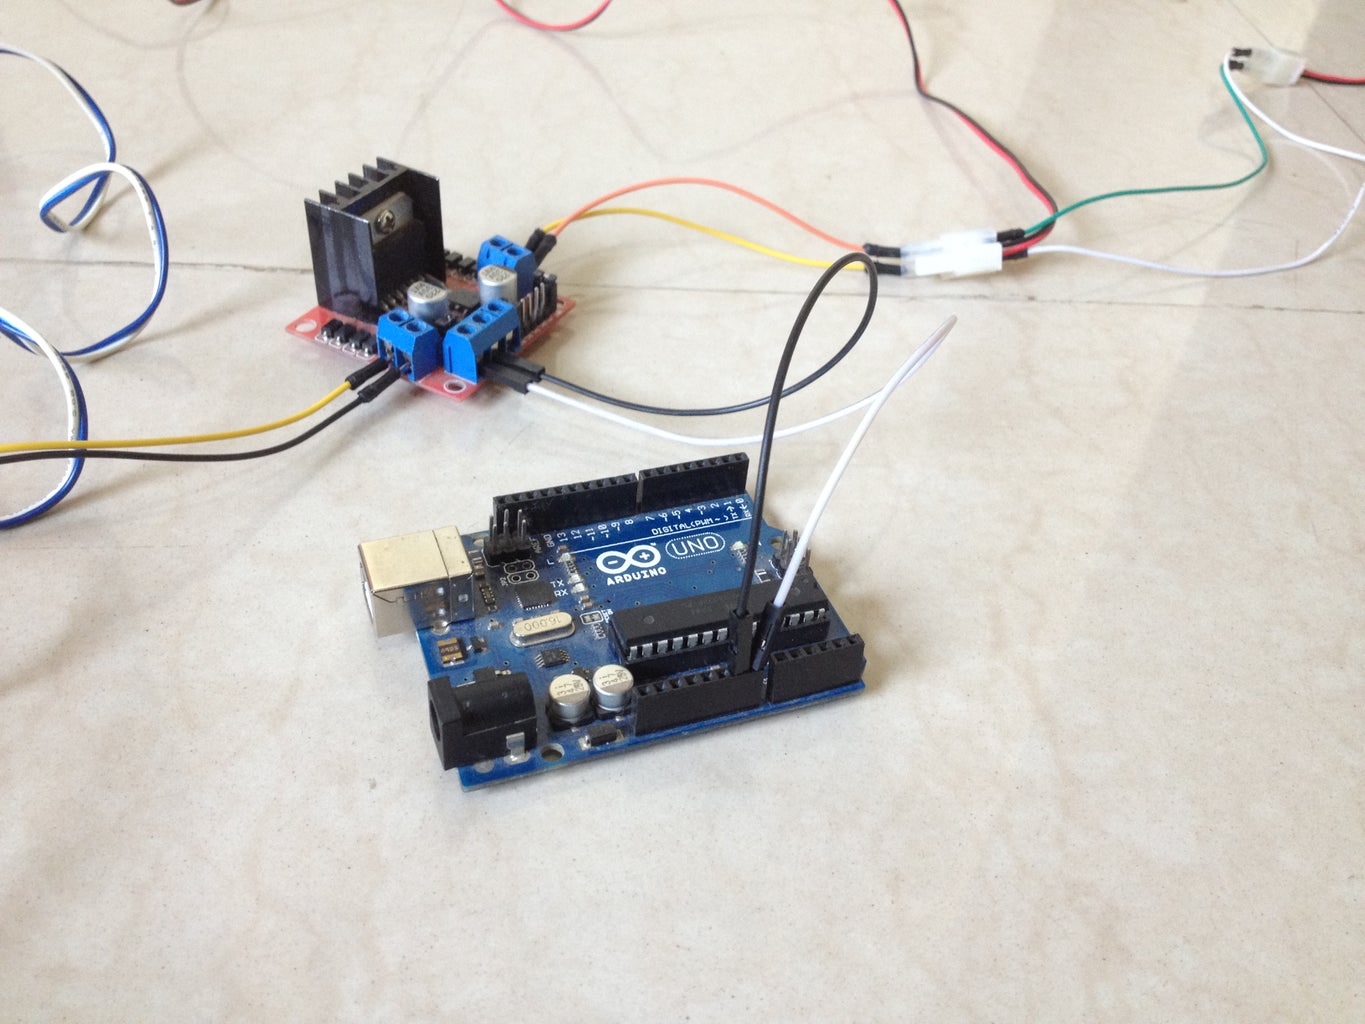 Connect the L298N Driver Board to the Power Pins of the Arduino Board